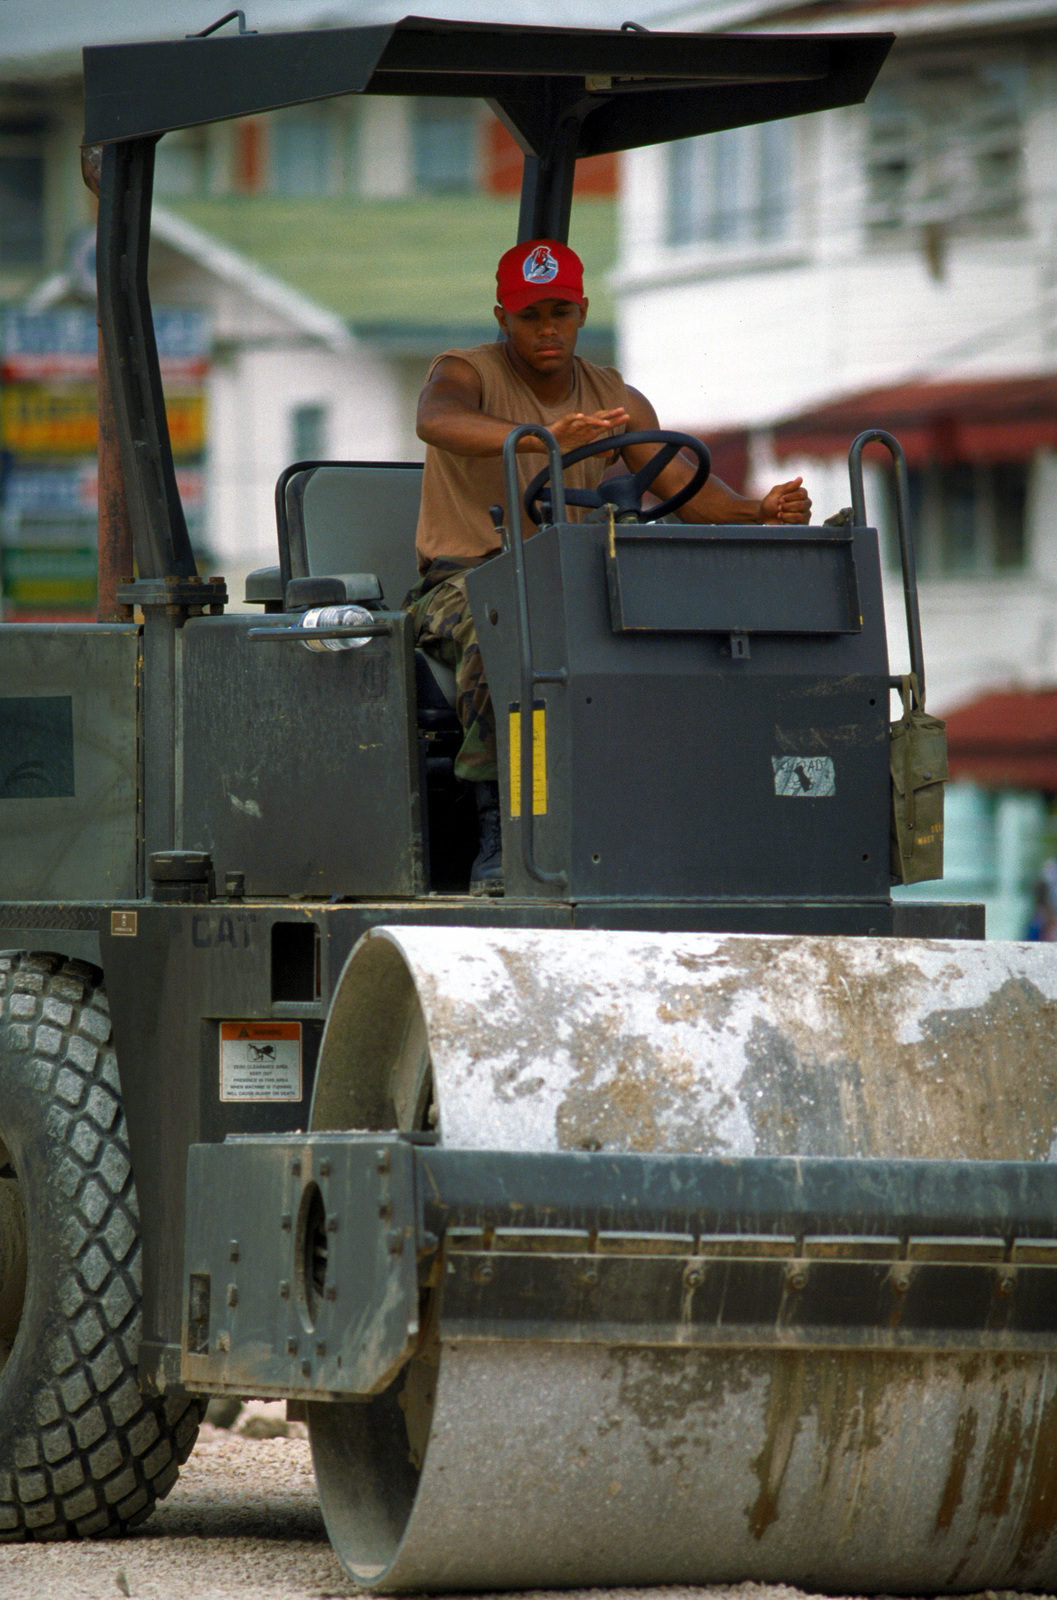 AIRMAN 1ST Class Tavares L. Lumplin, 820th Red Horse Squadron, Nellis Air Force Base, NV operates a steam roller at the site of the new St. Mary's Primary School. The school in Georgetown is being constructed during New Horizon '97, first combined humanitarian and civic assistance exercise conducted between the United States and Guyana. Military personnel from the Air Force, Air Force Reserve & National Guard, Army, Army National Guard and Marine Corps participated in the exercise which included engineering and medical readiness training